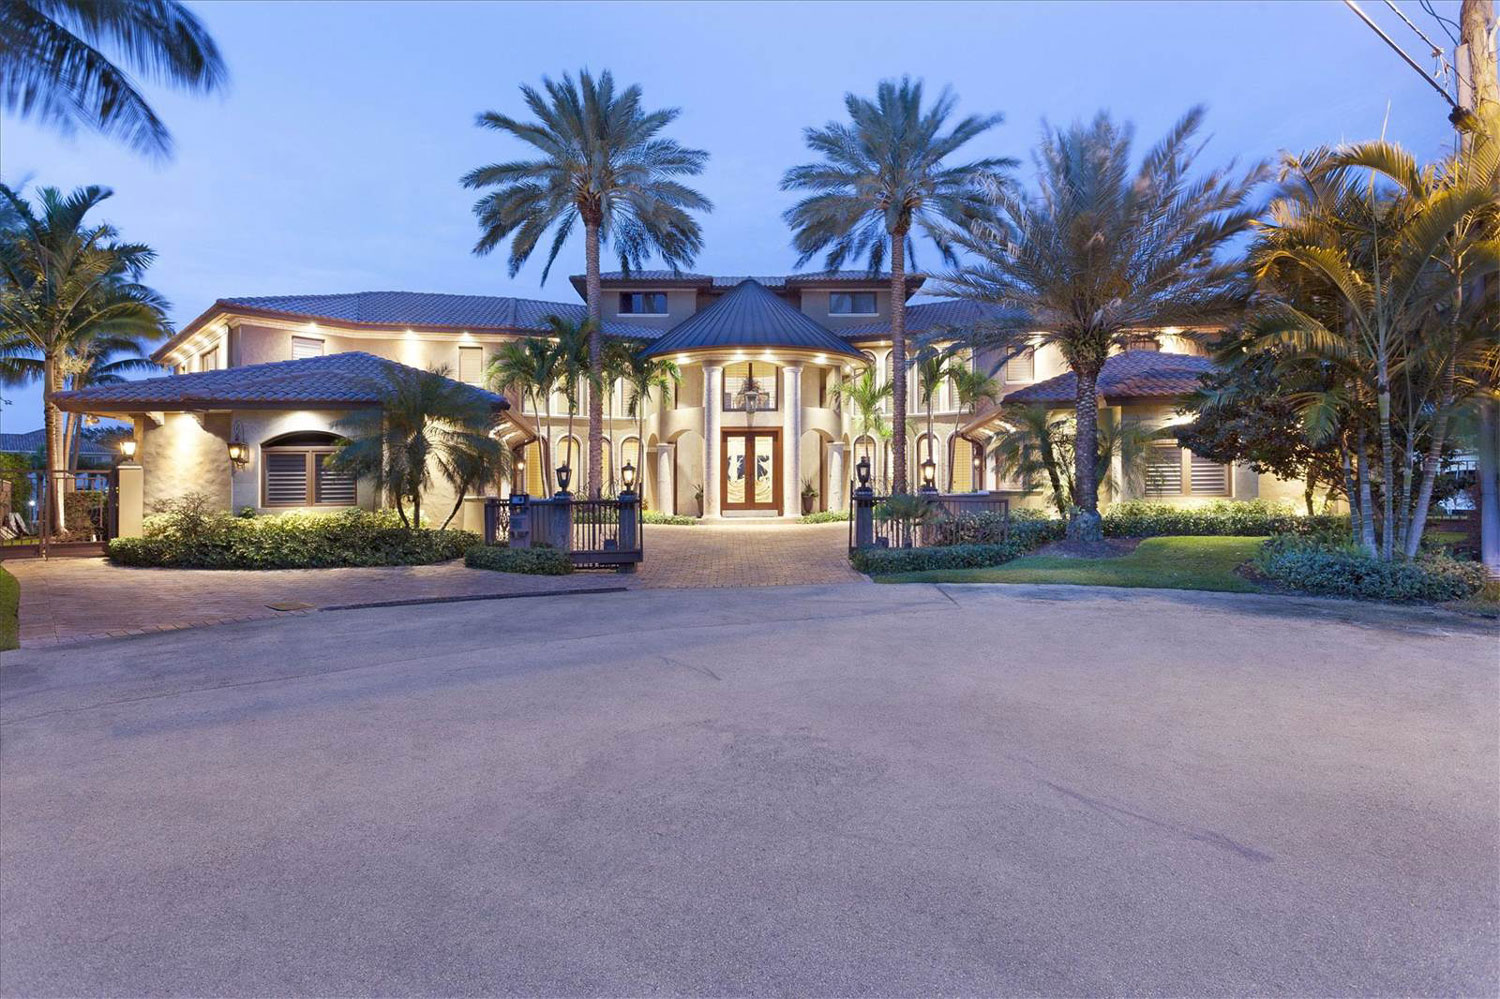 This magnificent Mediterranean-inspired palazzo in Florida's Lighthouse Point, between Fort Lauderdale and Boca Raton, was designed for the life aquatic.